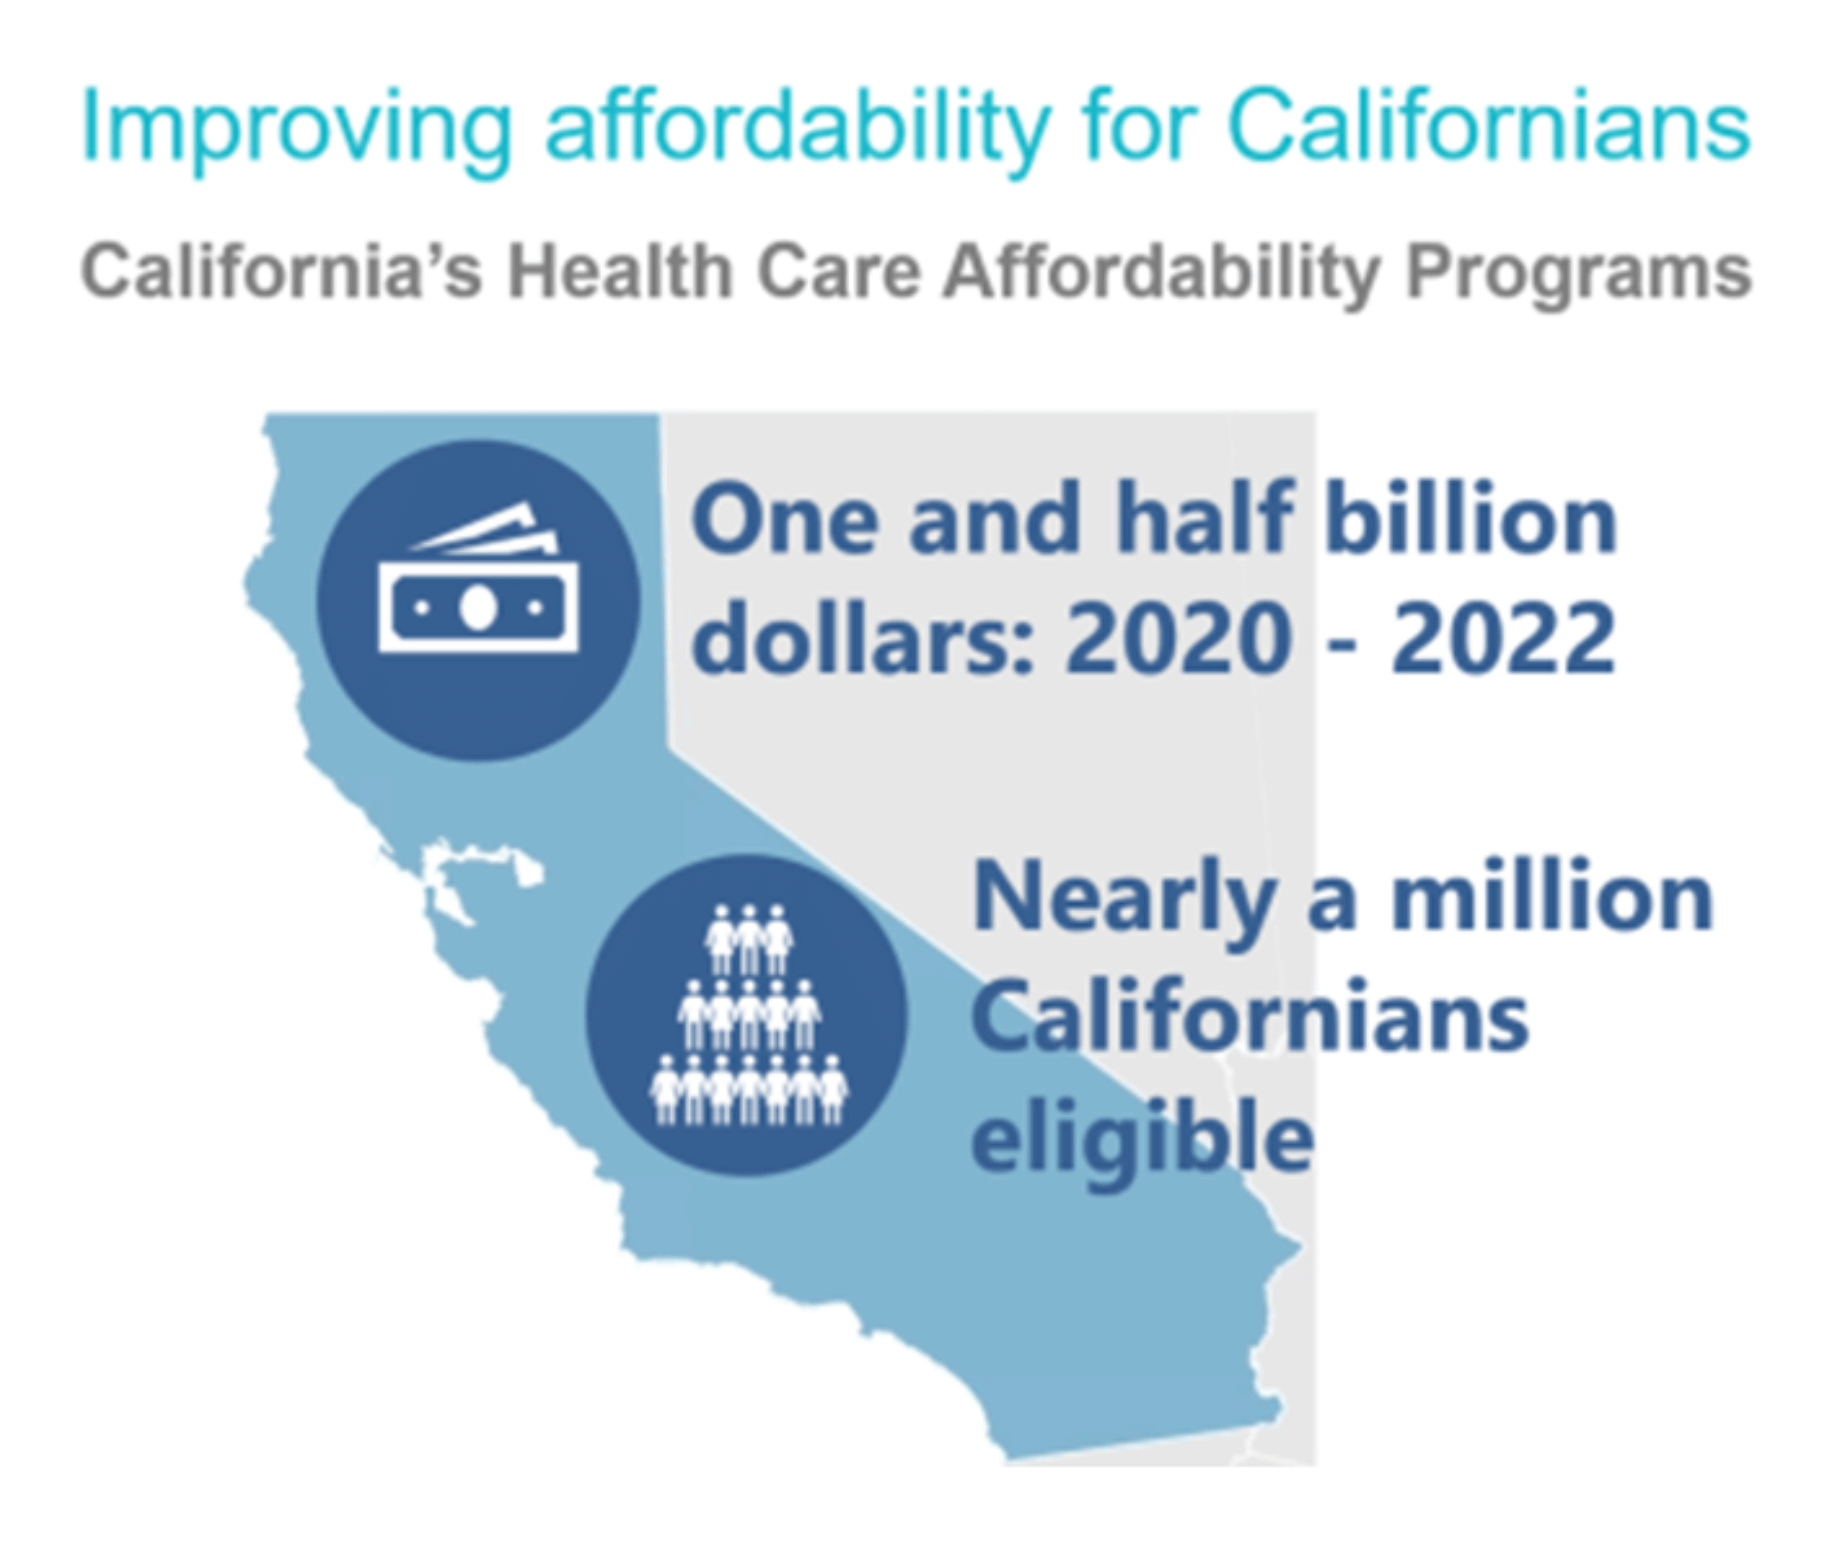 covered california improving affordability